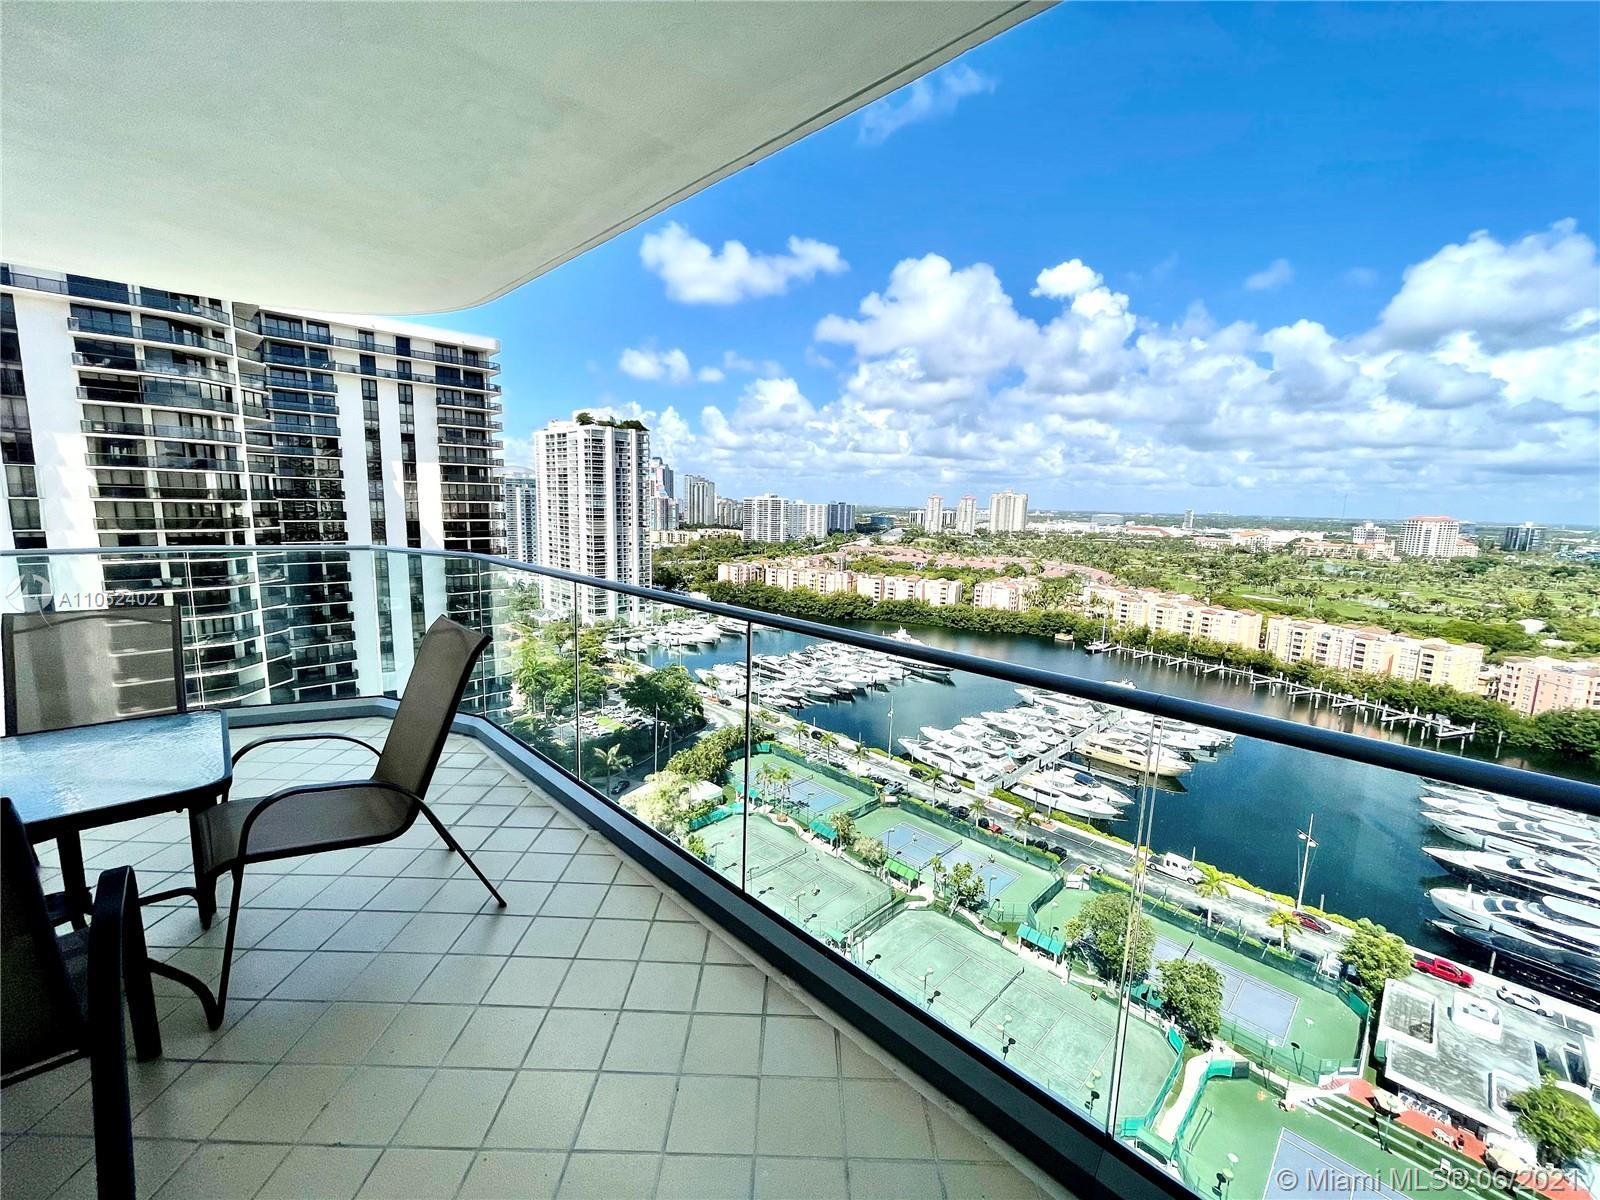 Large 3 Bd. 2 Bth. in luxurious Turnberry Isle North Tower completely furnished. Master closet turne